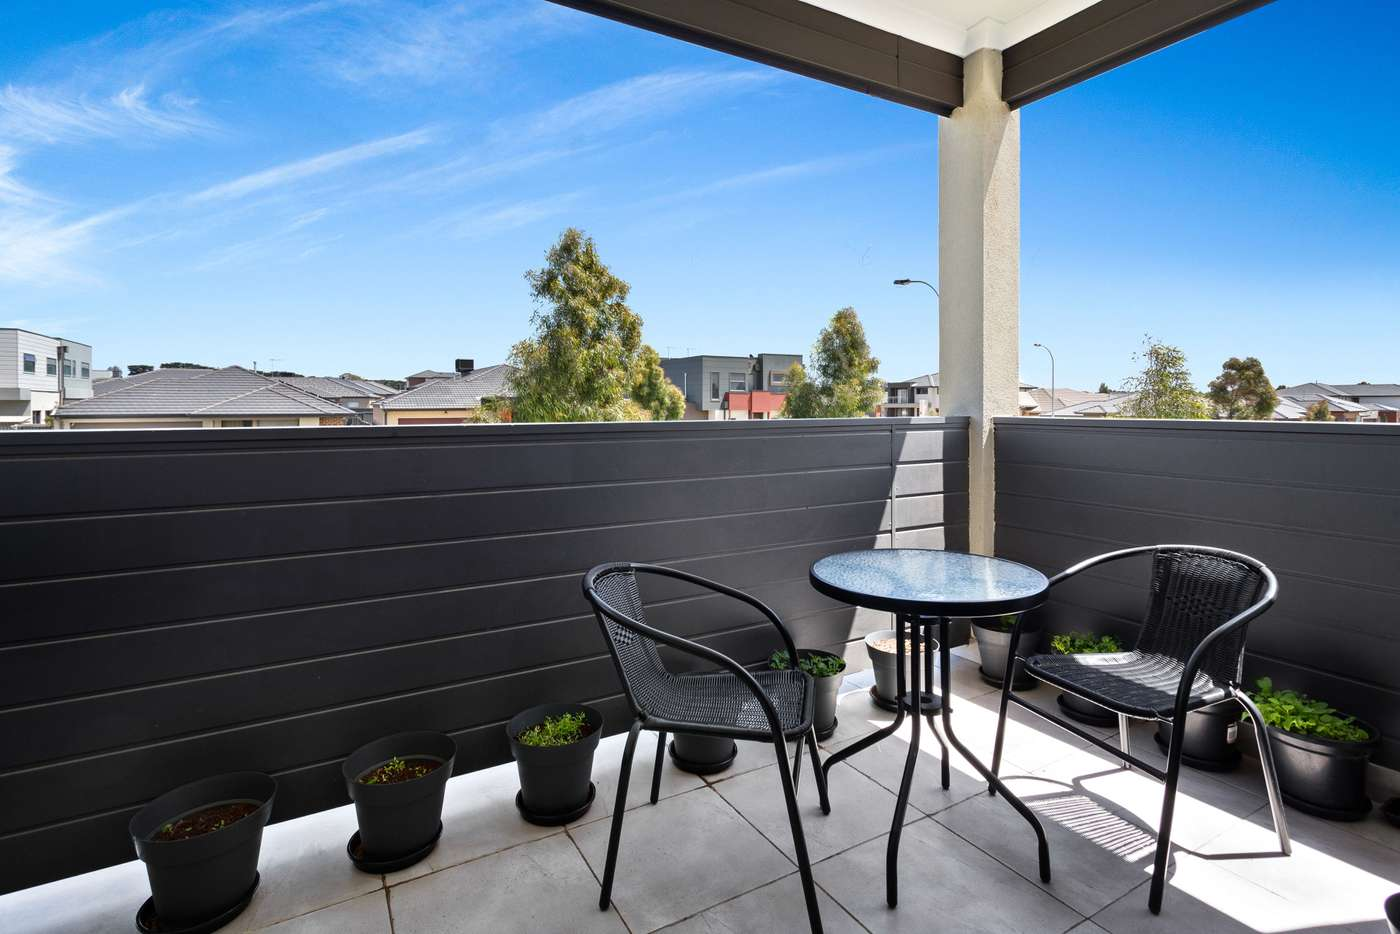 Sixth view of Homely unit listing, 11 Nugget Way, Cranbourne East VIC 3977